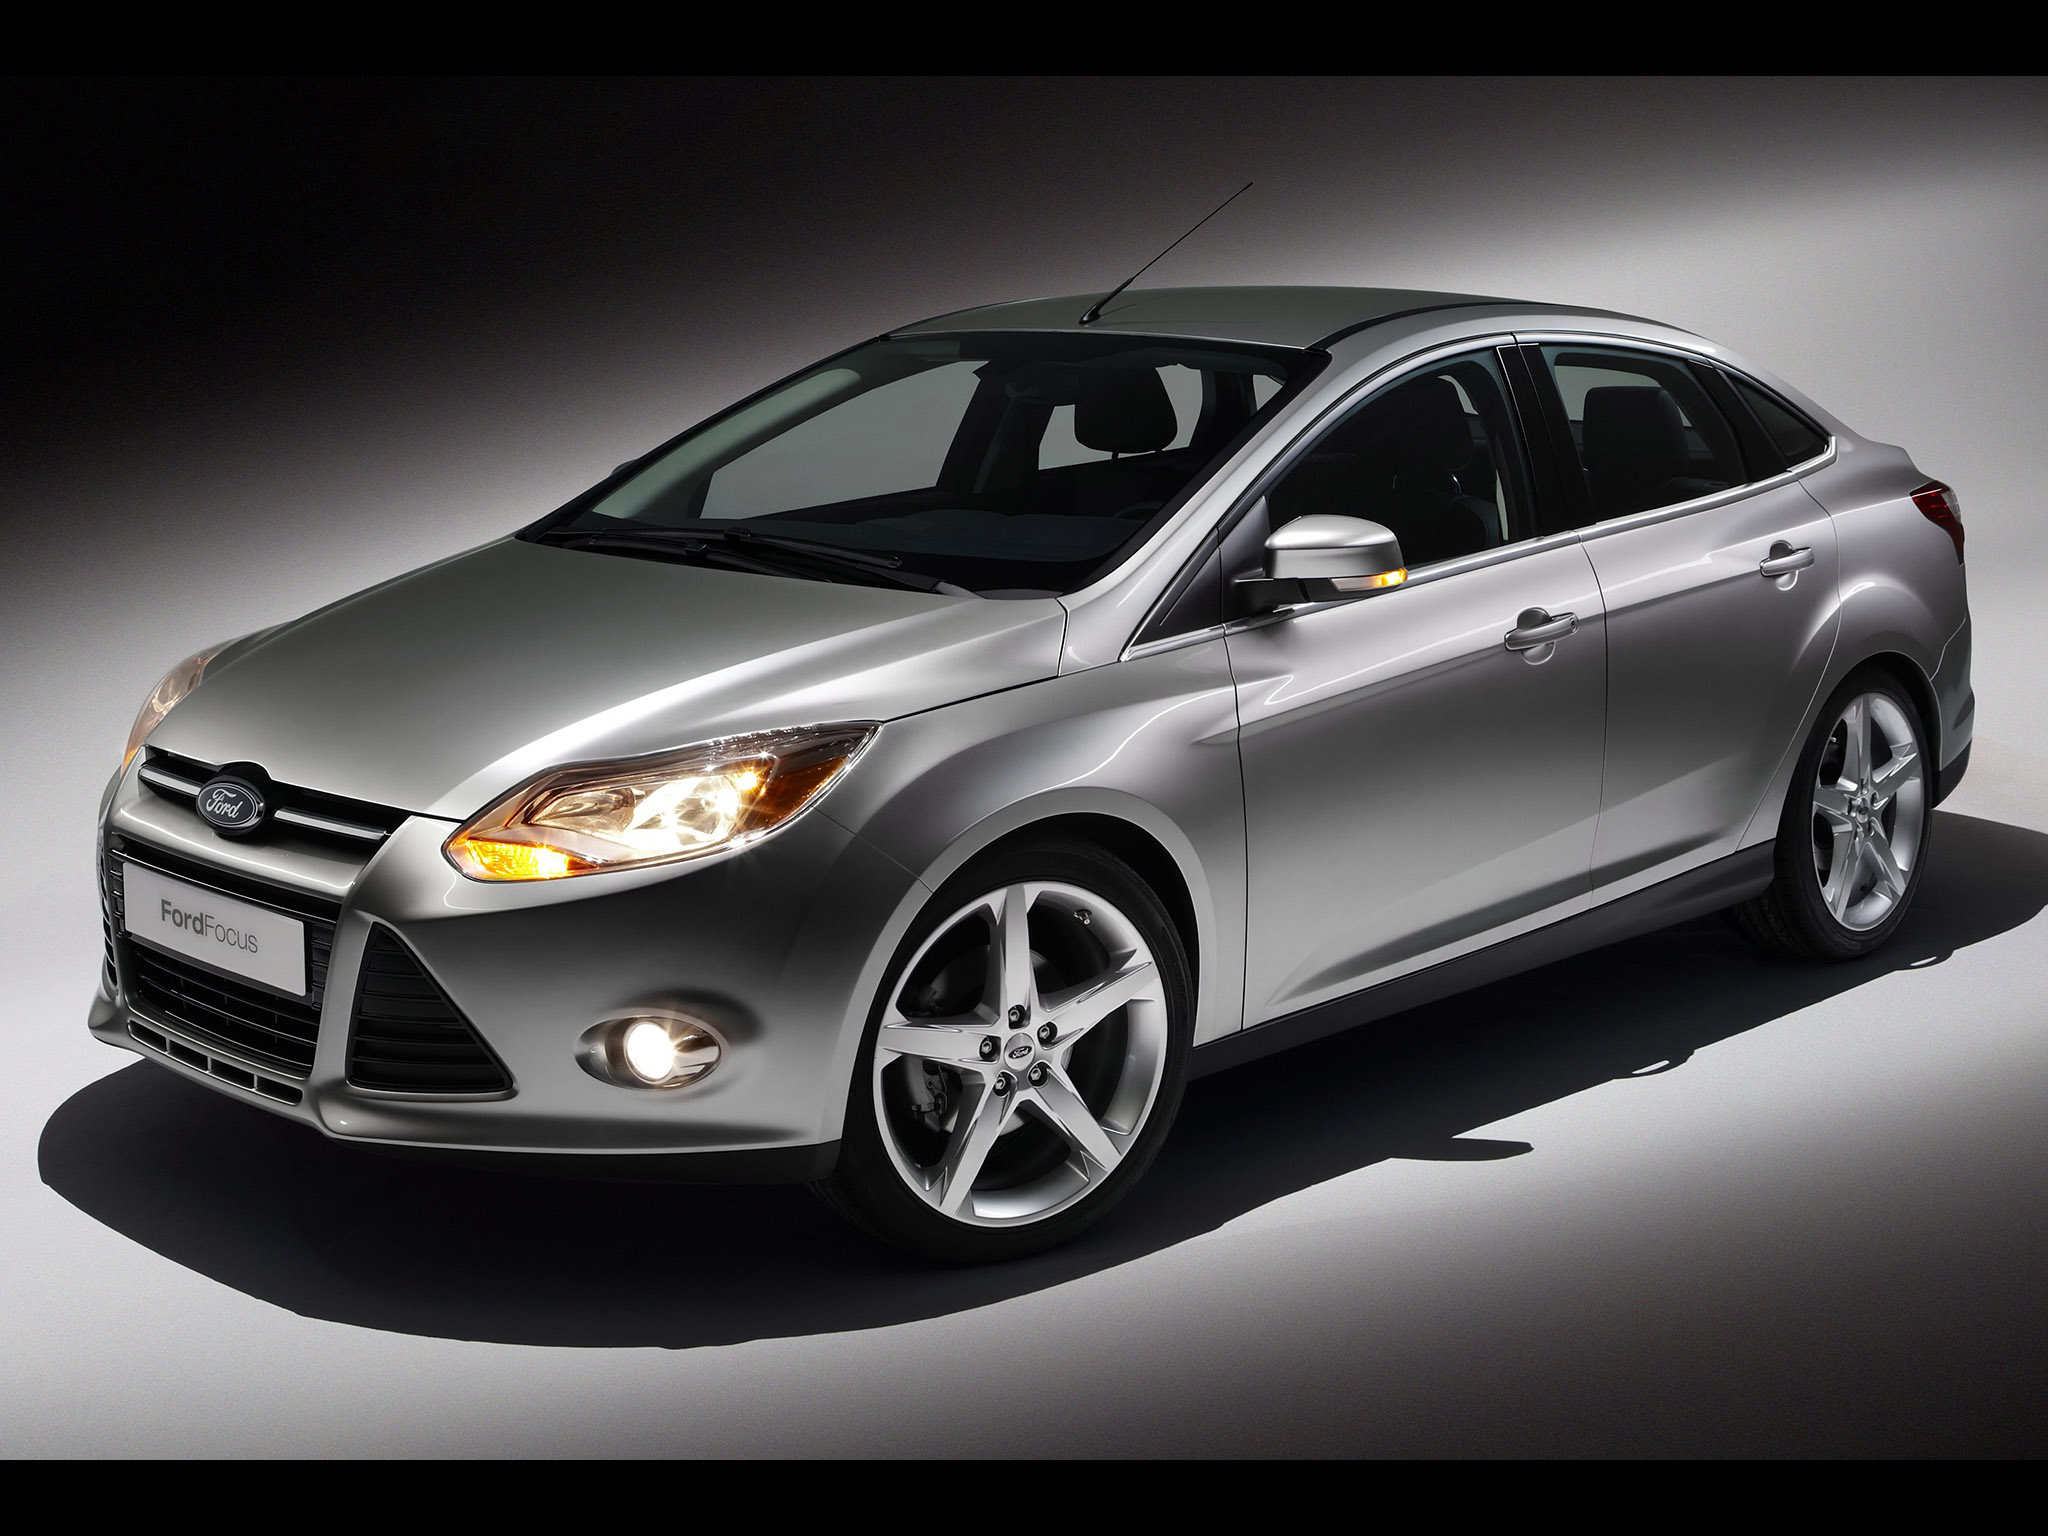 ford focus usa pics